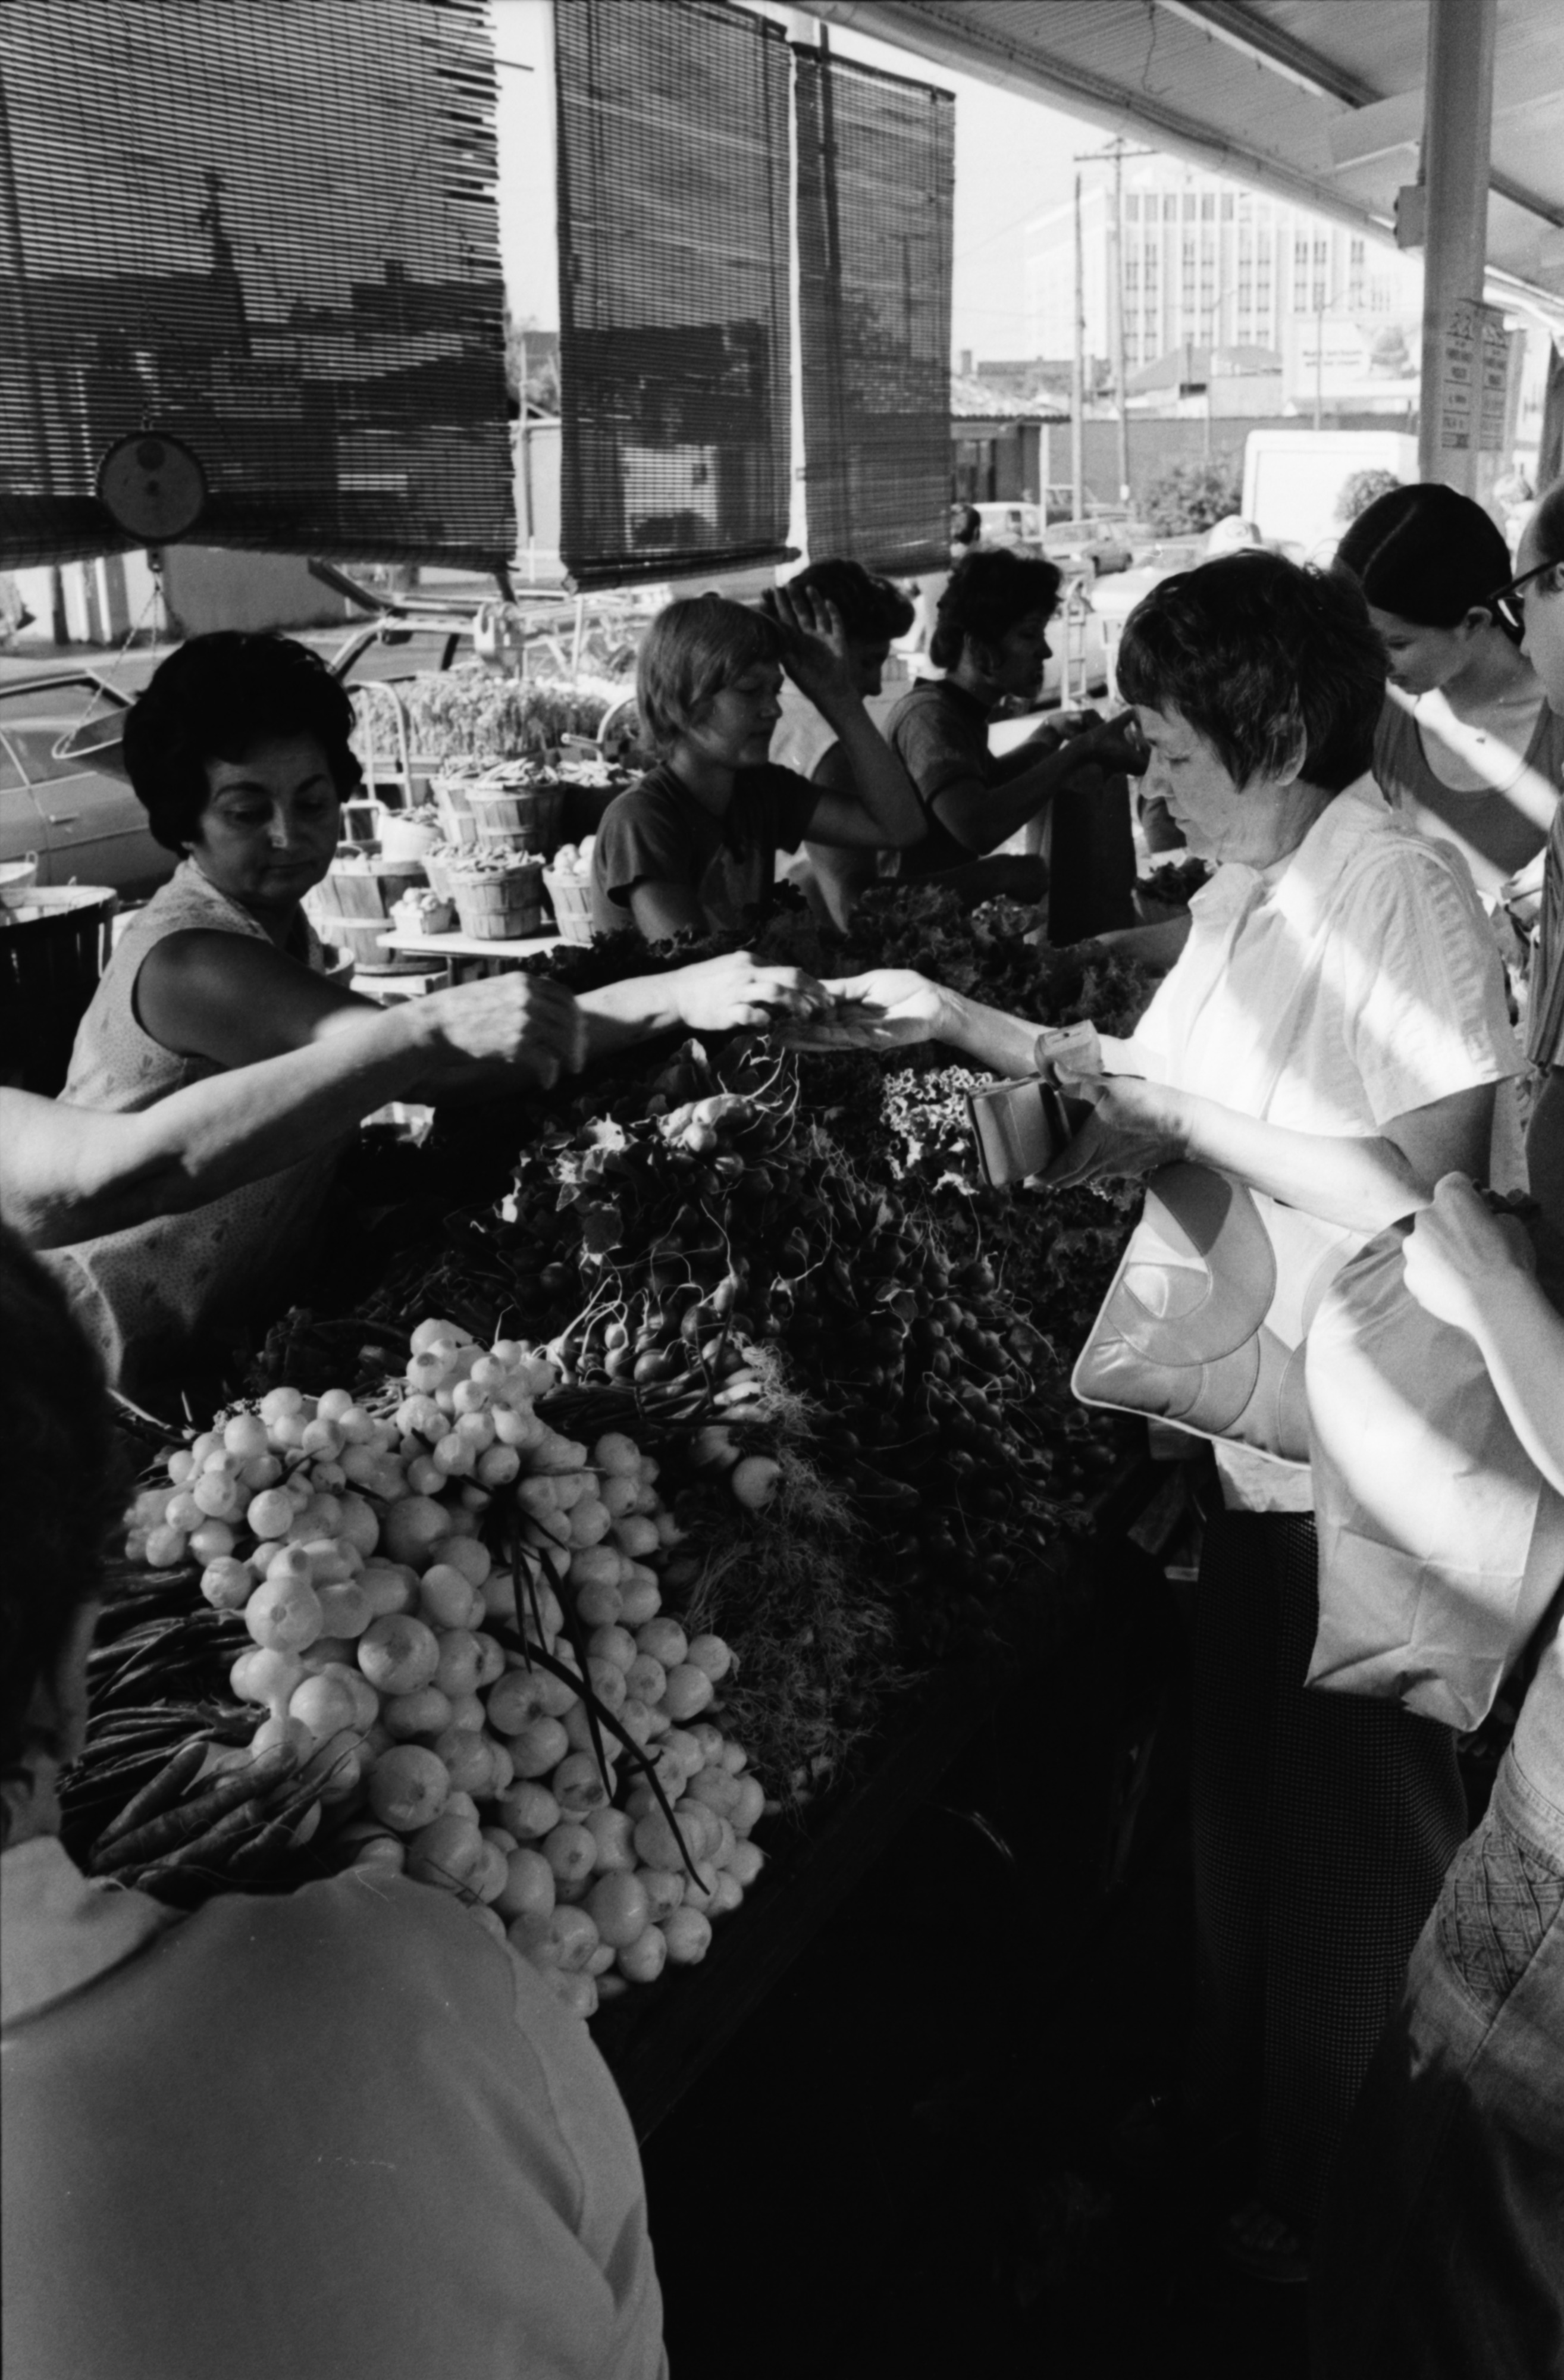 Views from the Ann Arbor Farmers Market, July 1977 image